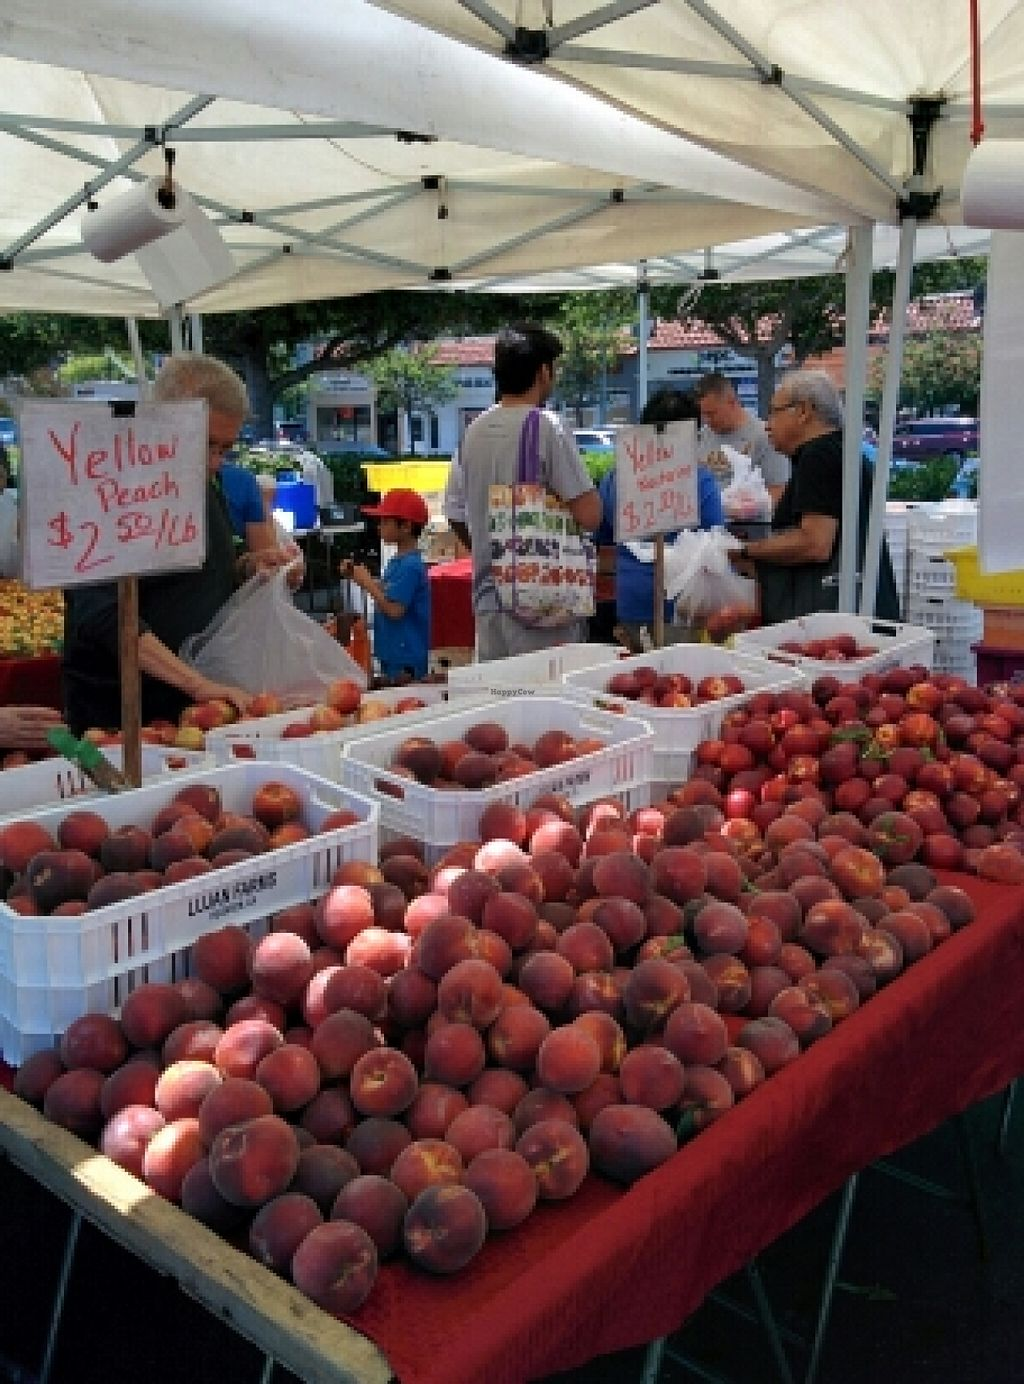 """Photo of Belmont Farmers' Market  by <a href=""""/members/profile/alexandra_vegan"""">alexandra_vegan</a> <br/>conventional produce <br/> June 15, 2016  - <a href='/contact/abuse/image/31963/153947'>Report</a>"""